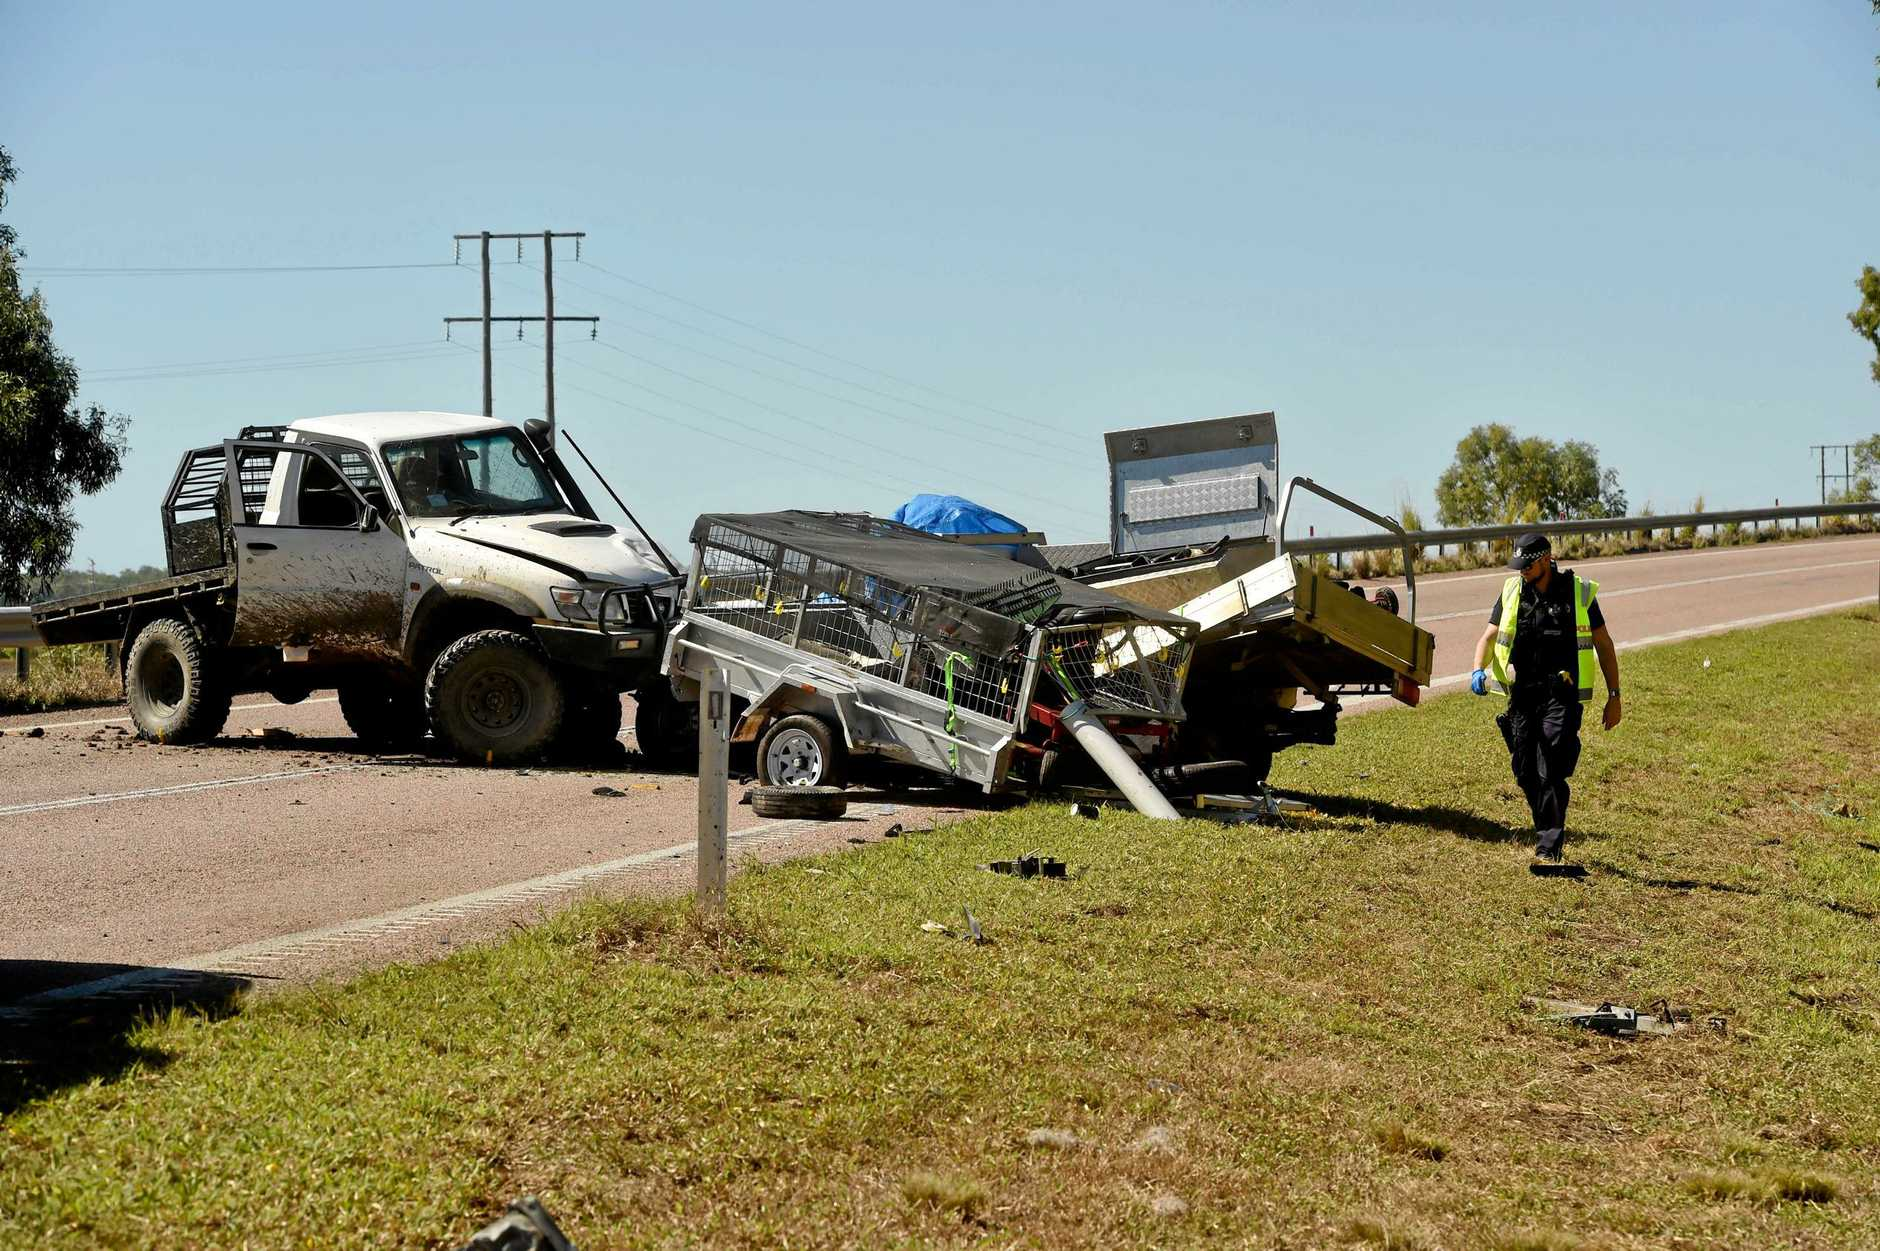 Fatal crash on Bruce Highway at Cape Cleveland, near AIMS turnoff.